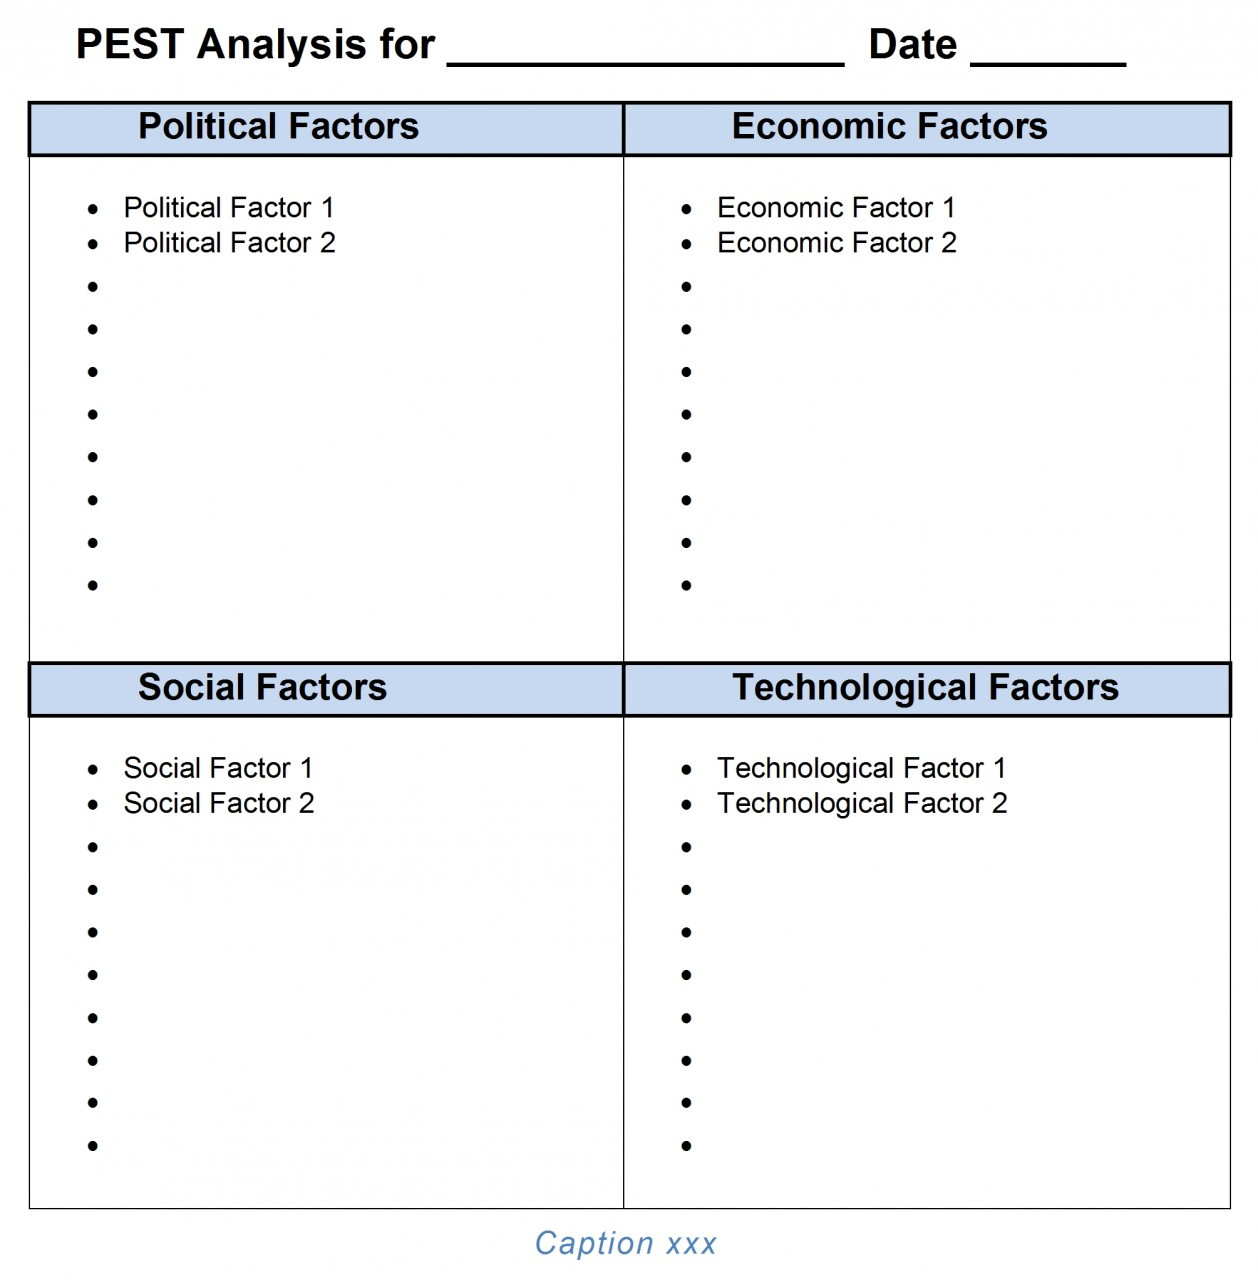 pest analysis template word 2007 2010 2013